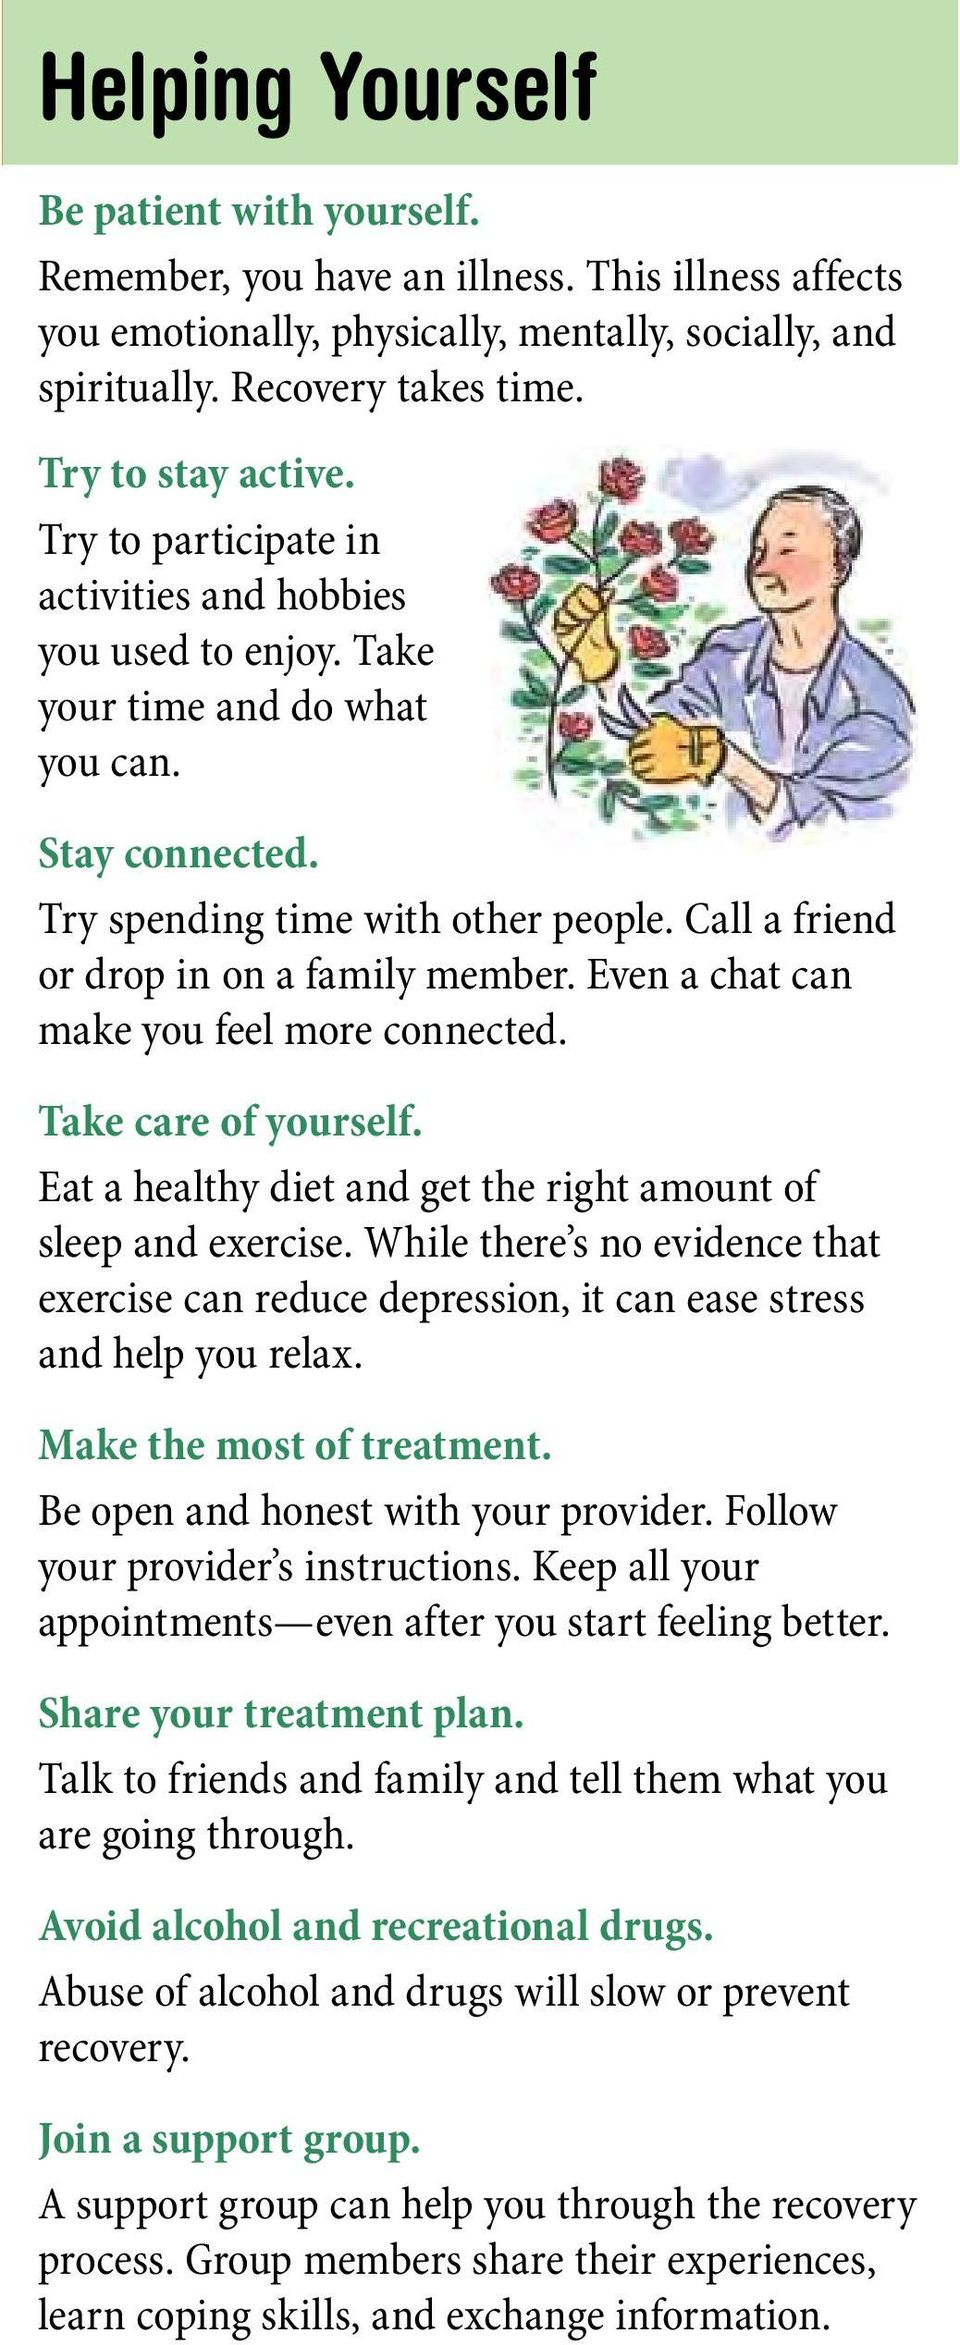 Call a friend or drop in on a family member. Even a chat can make you feel more connected. Take care of yourself. Eat a healthy diet and get the right amount of sleep and exercise.